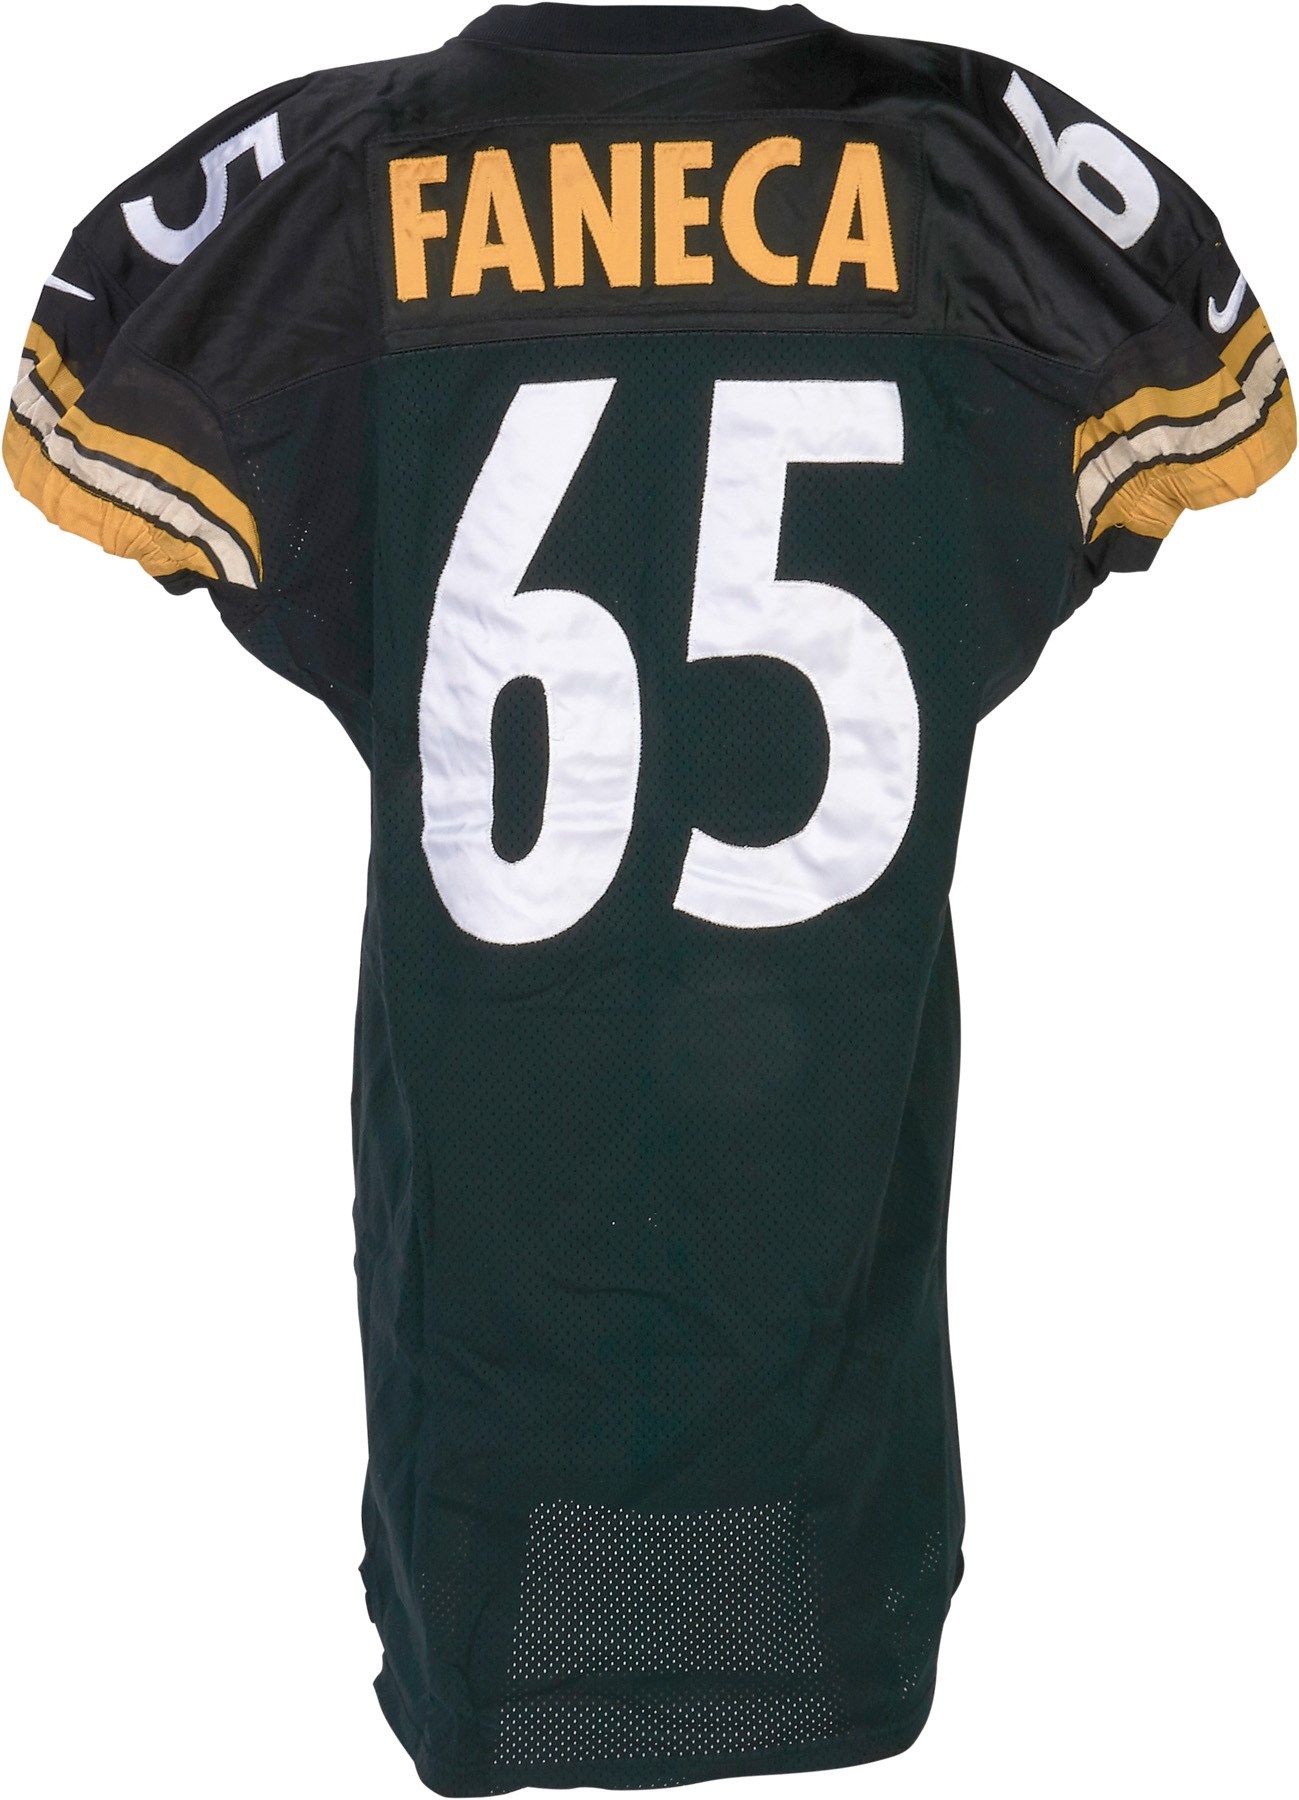 77e068a15e8 Lelands.com - The Pittsburgh Steelers Game Worn Jersey Archive ...